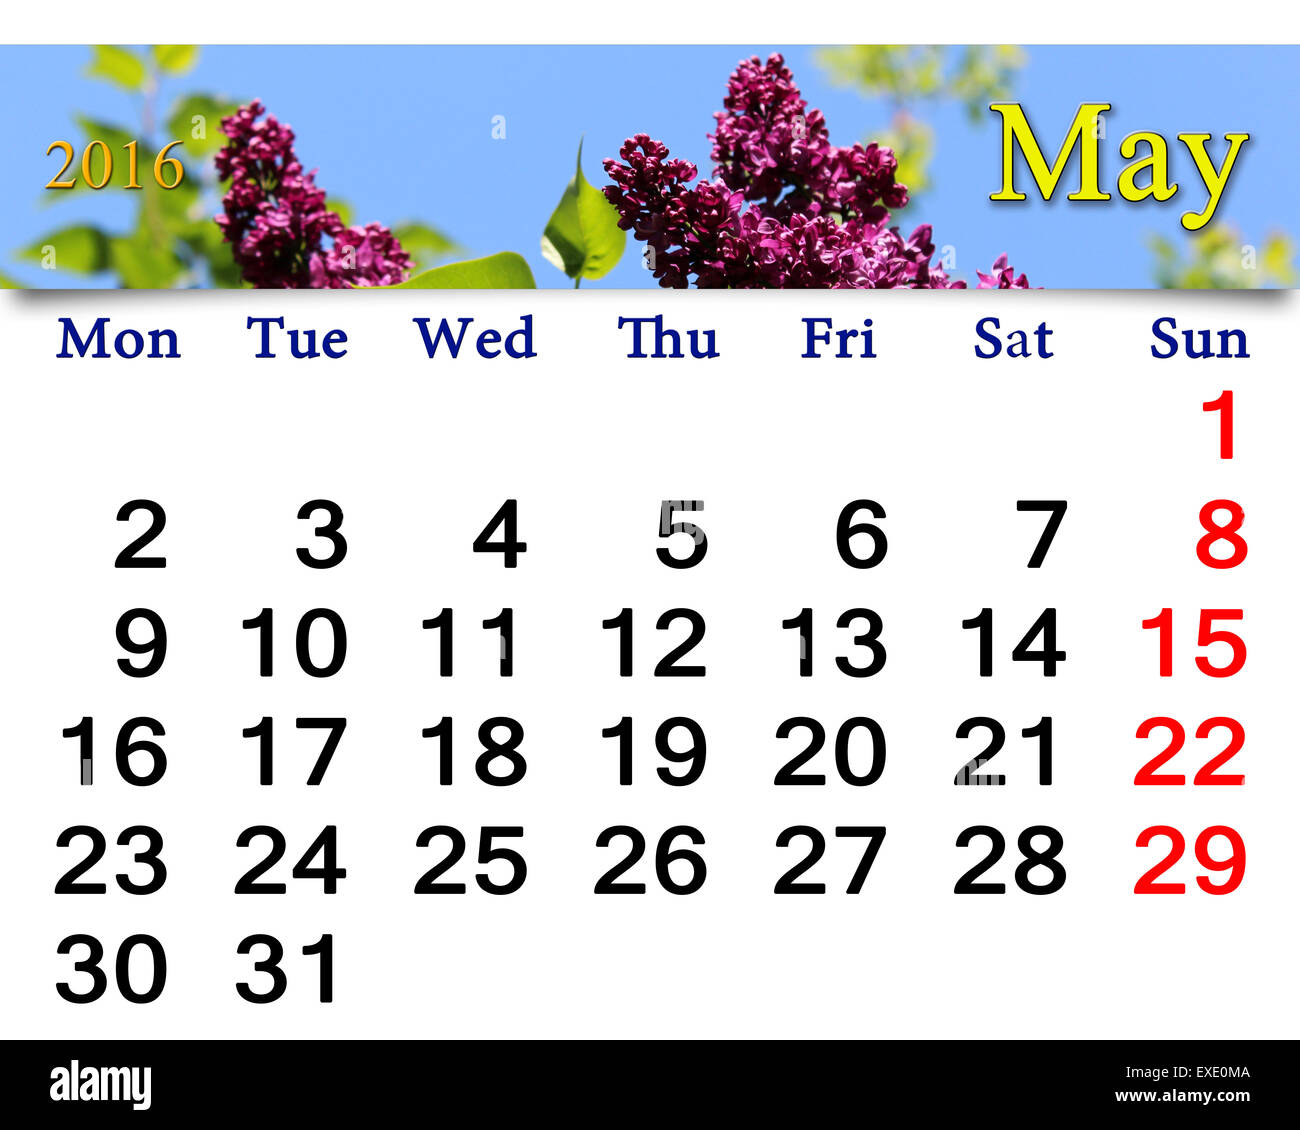 Calendario De Mayo De 2016 Con Flores De Color Lila Calendario